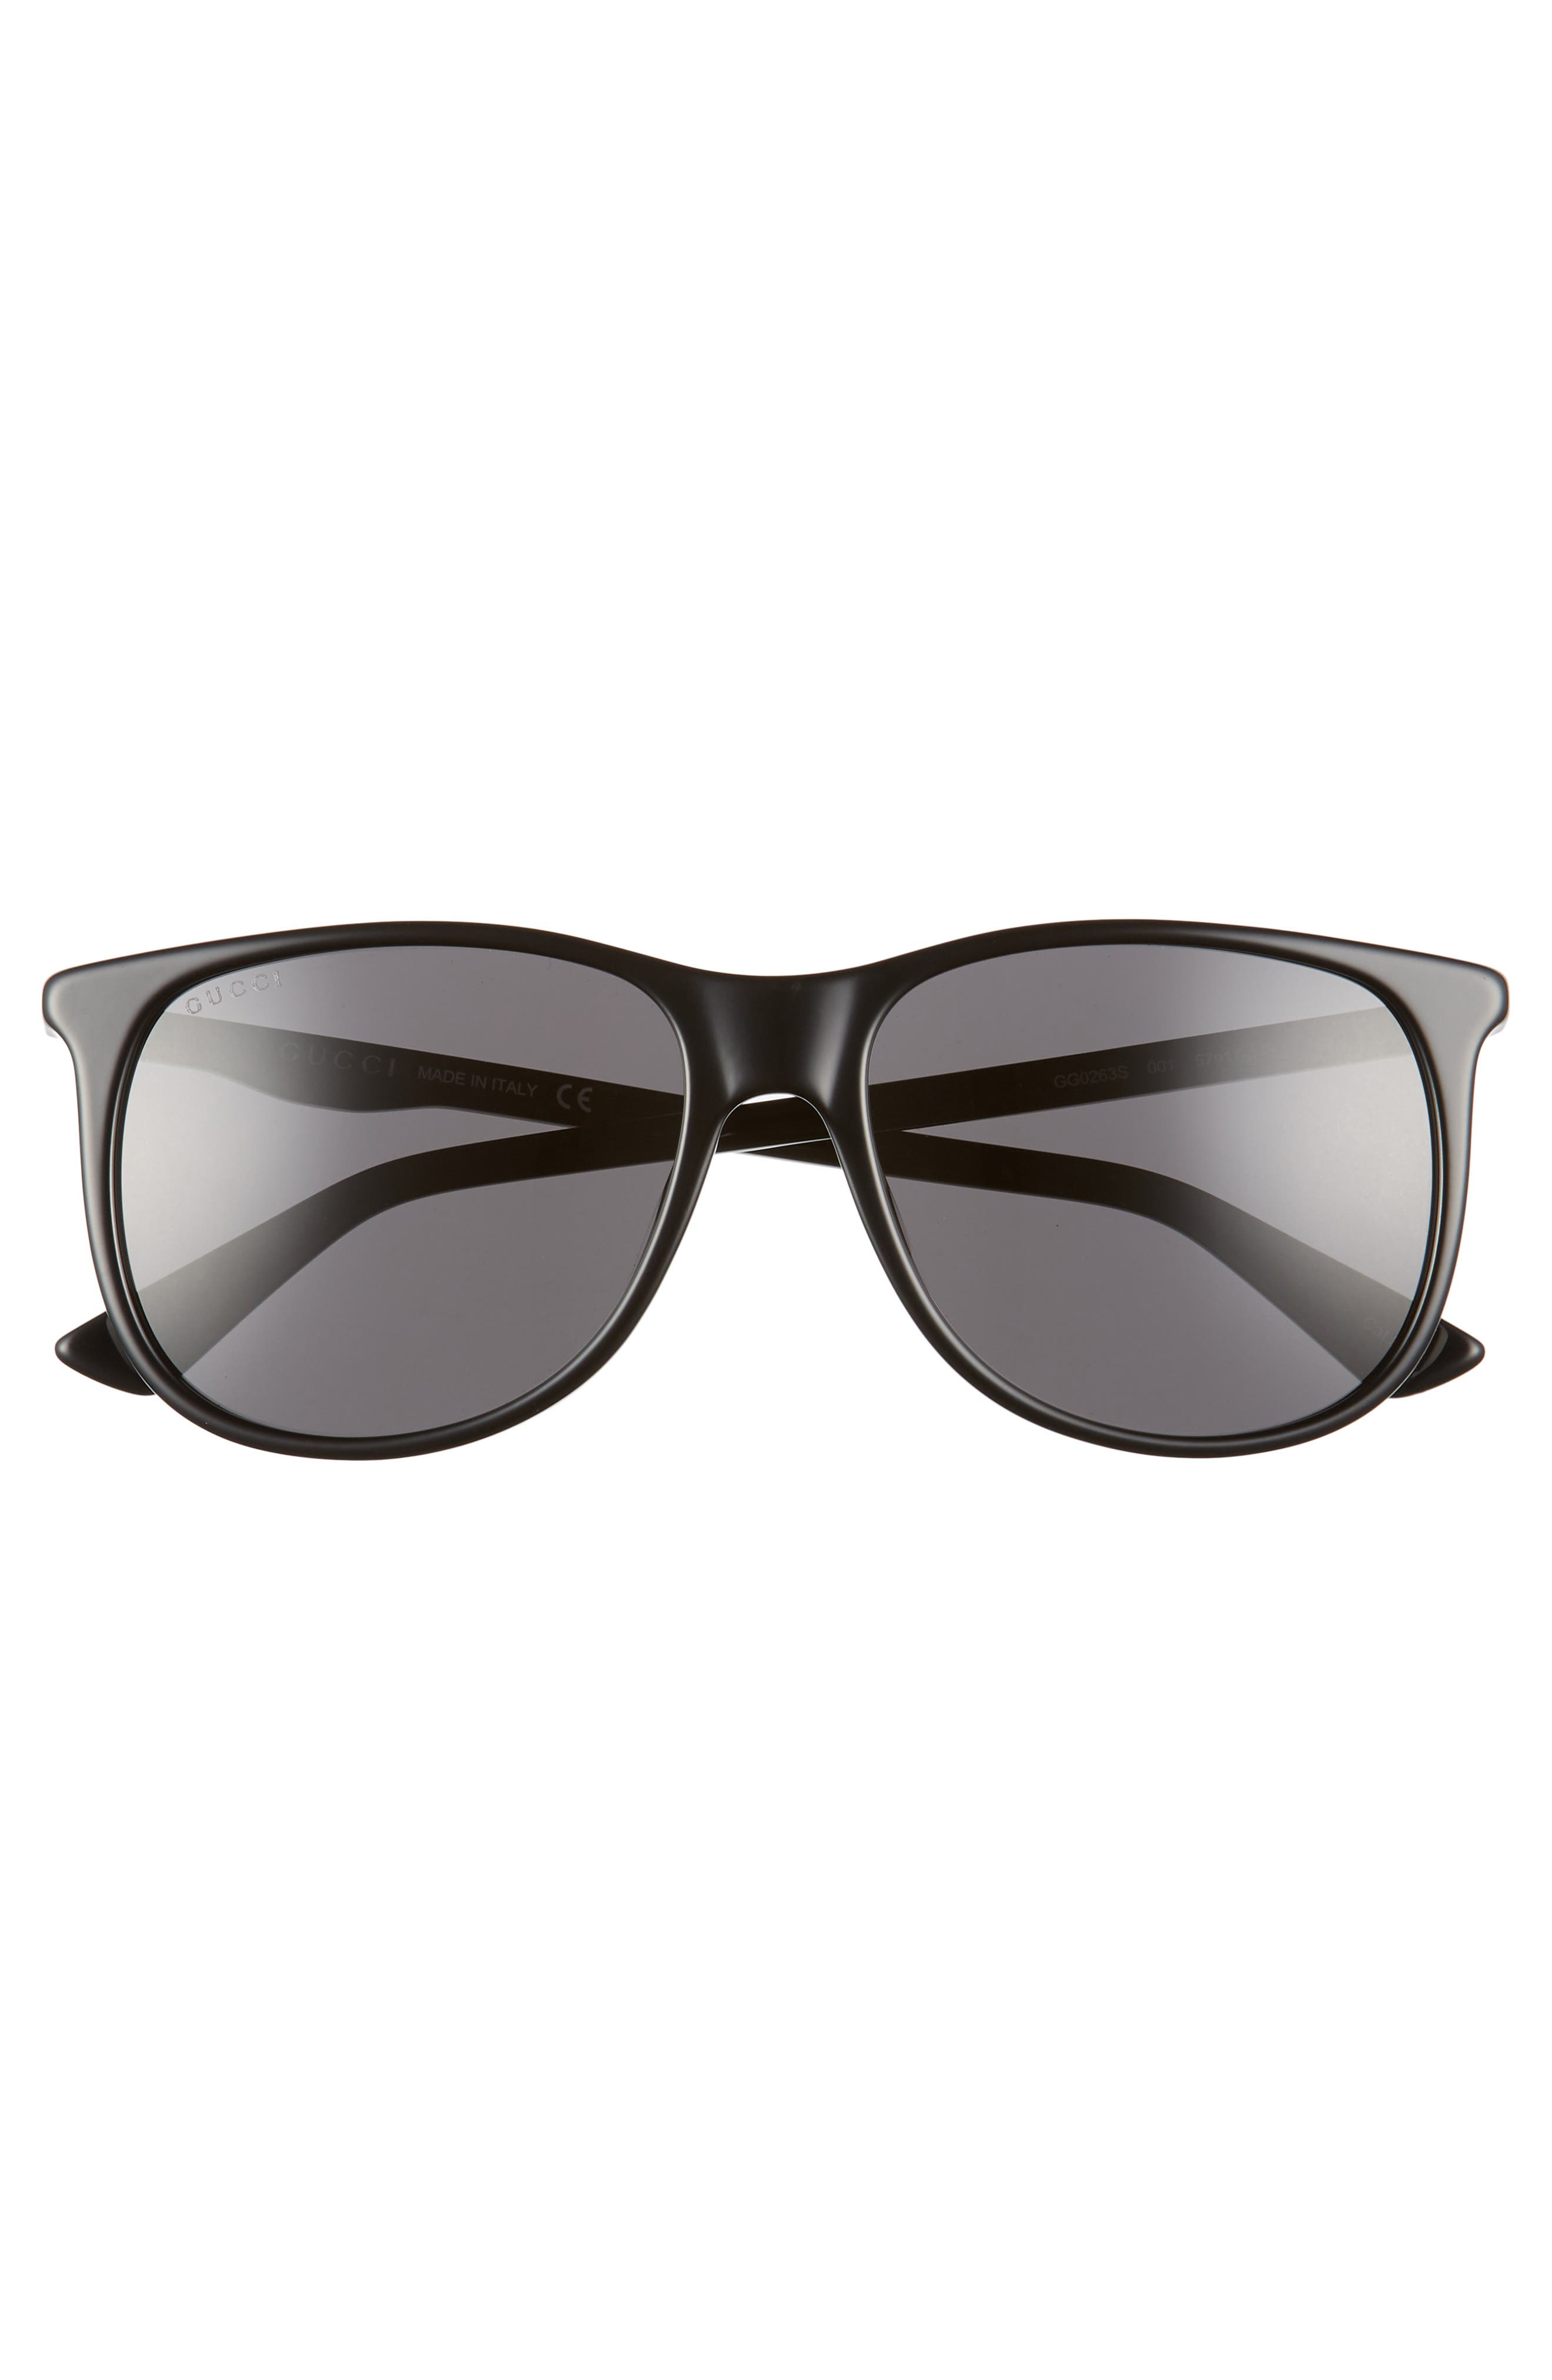 80s 56mm Sunglasses,                             Alternate thumbnail 2, color,                             BLACK